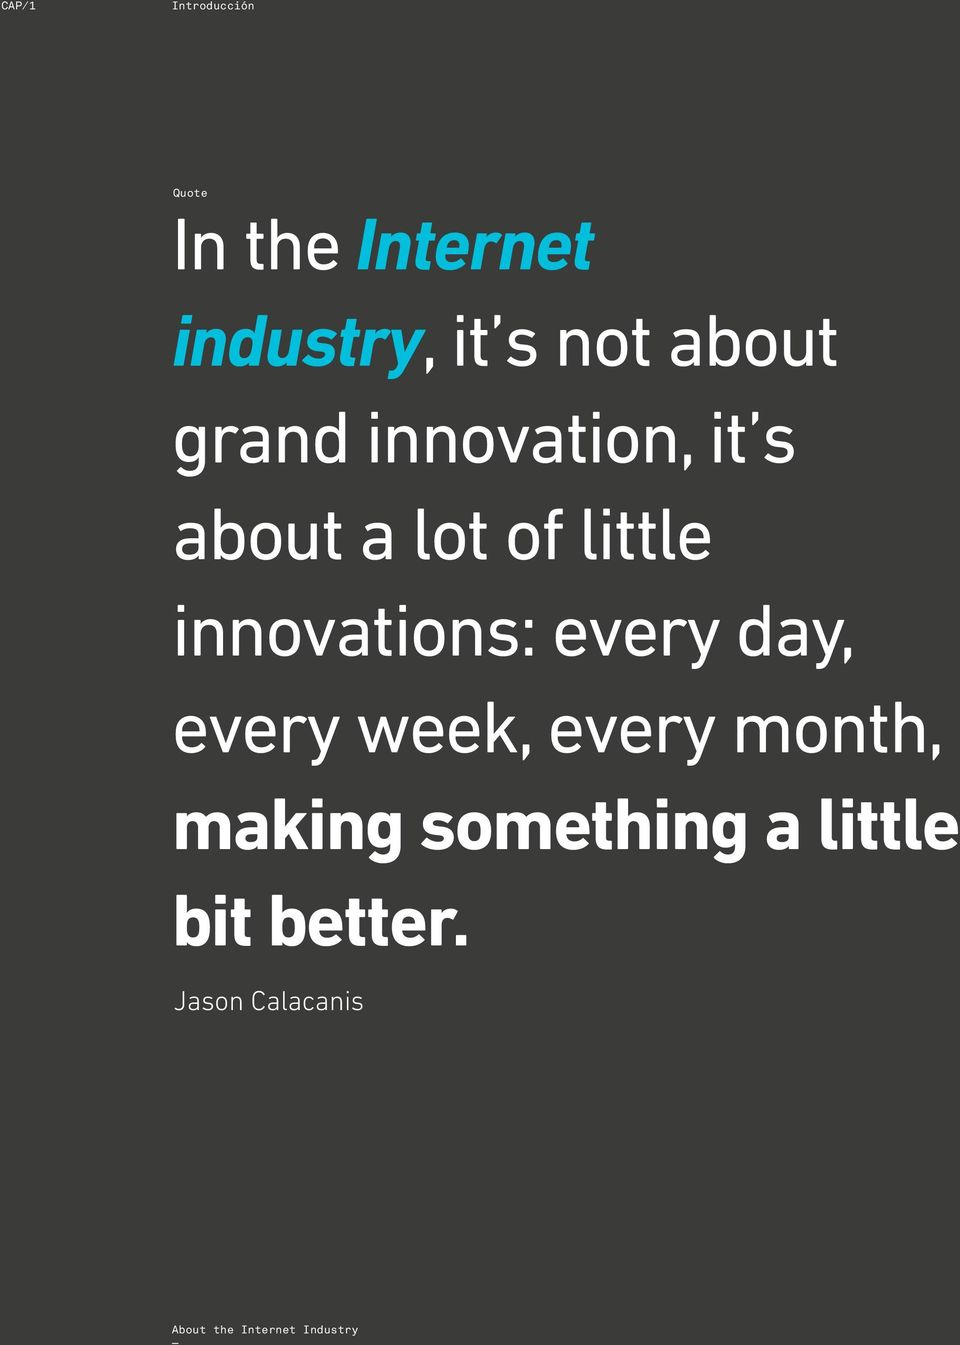 innovations: every day, every week, every month, making